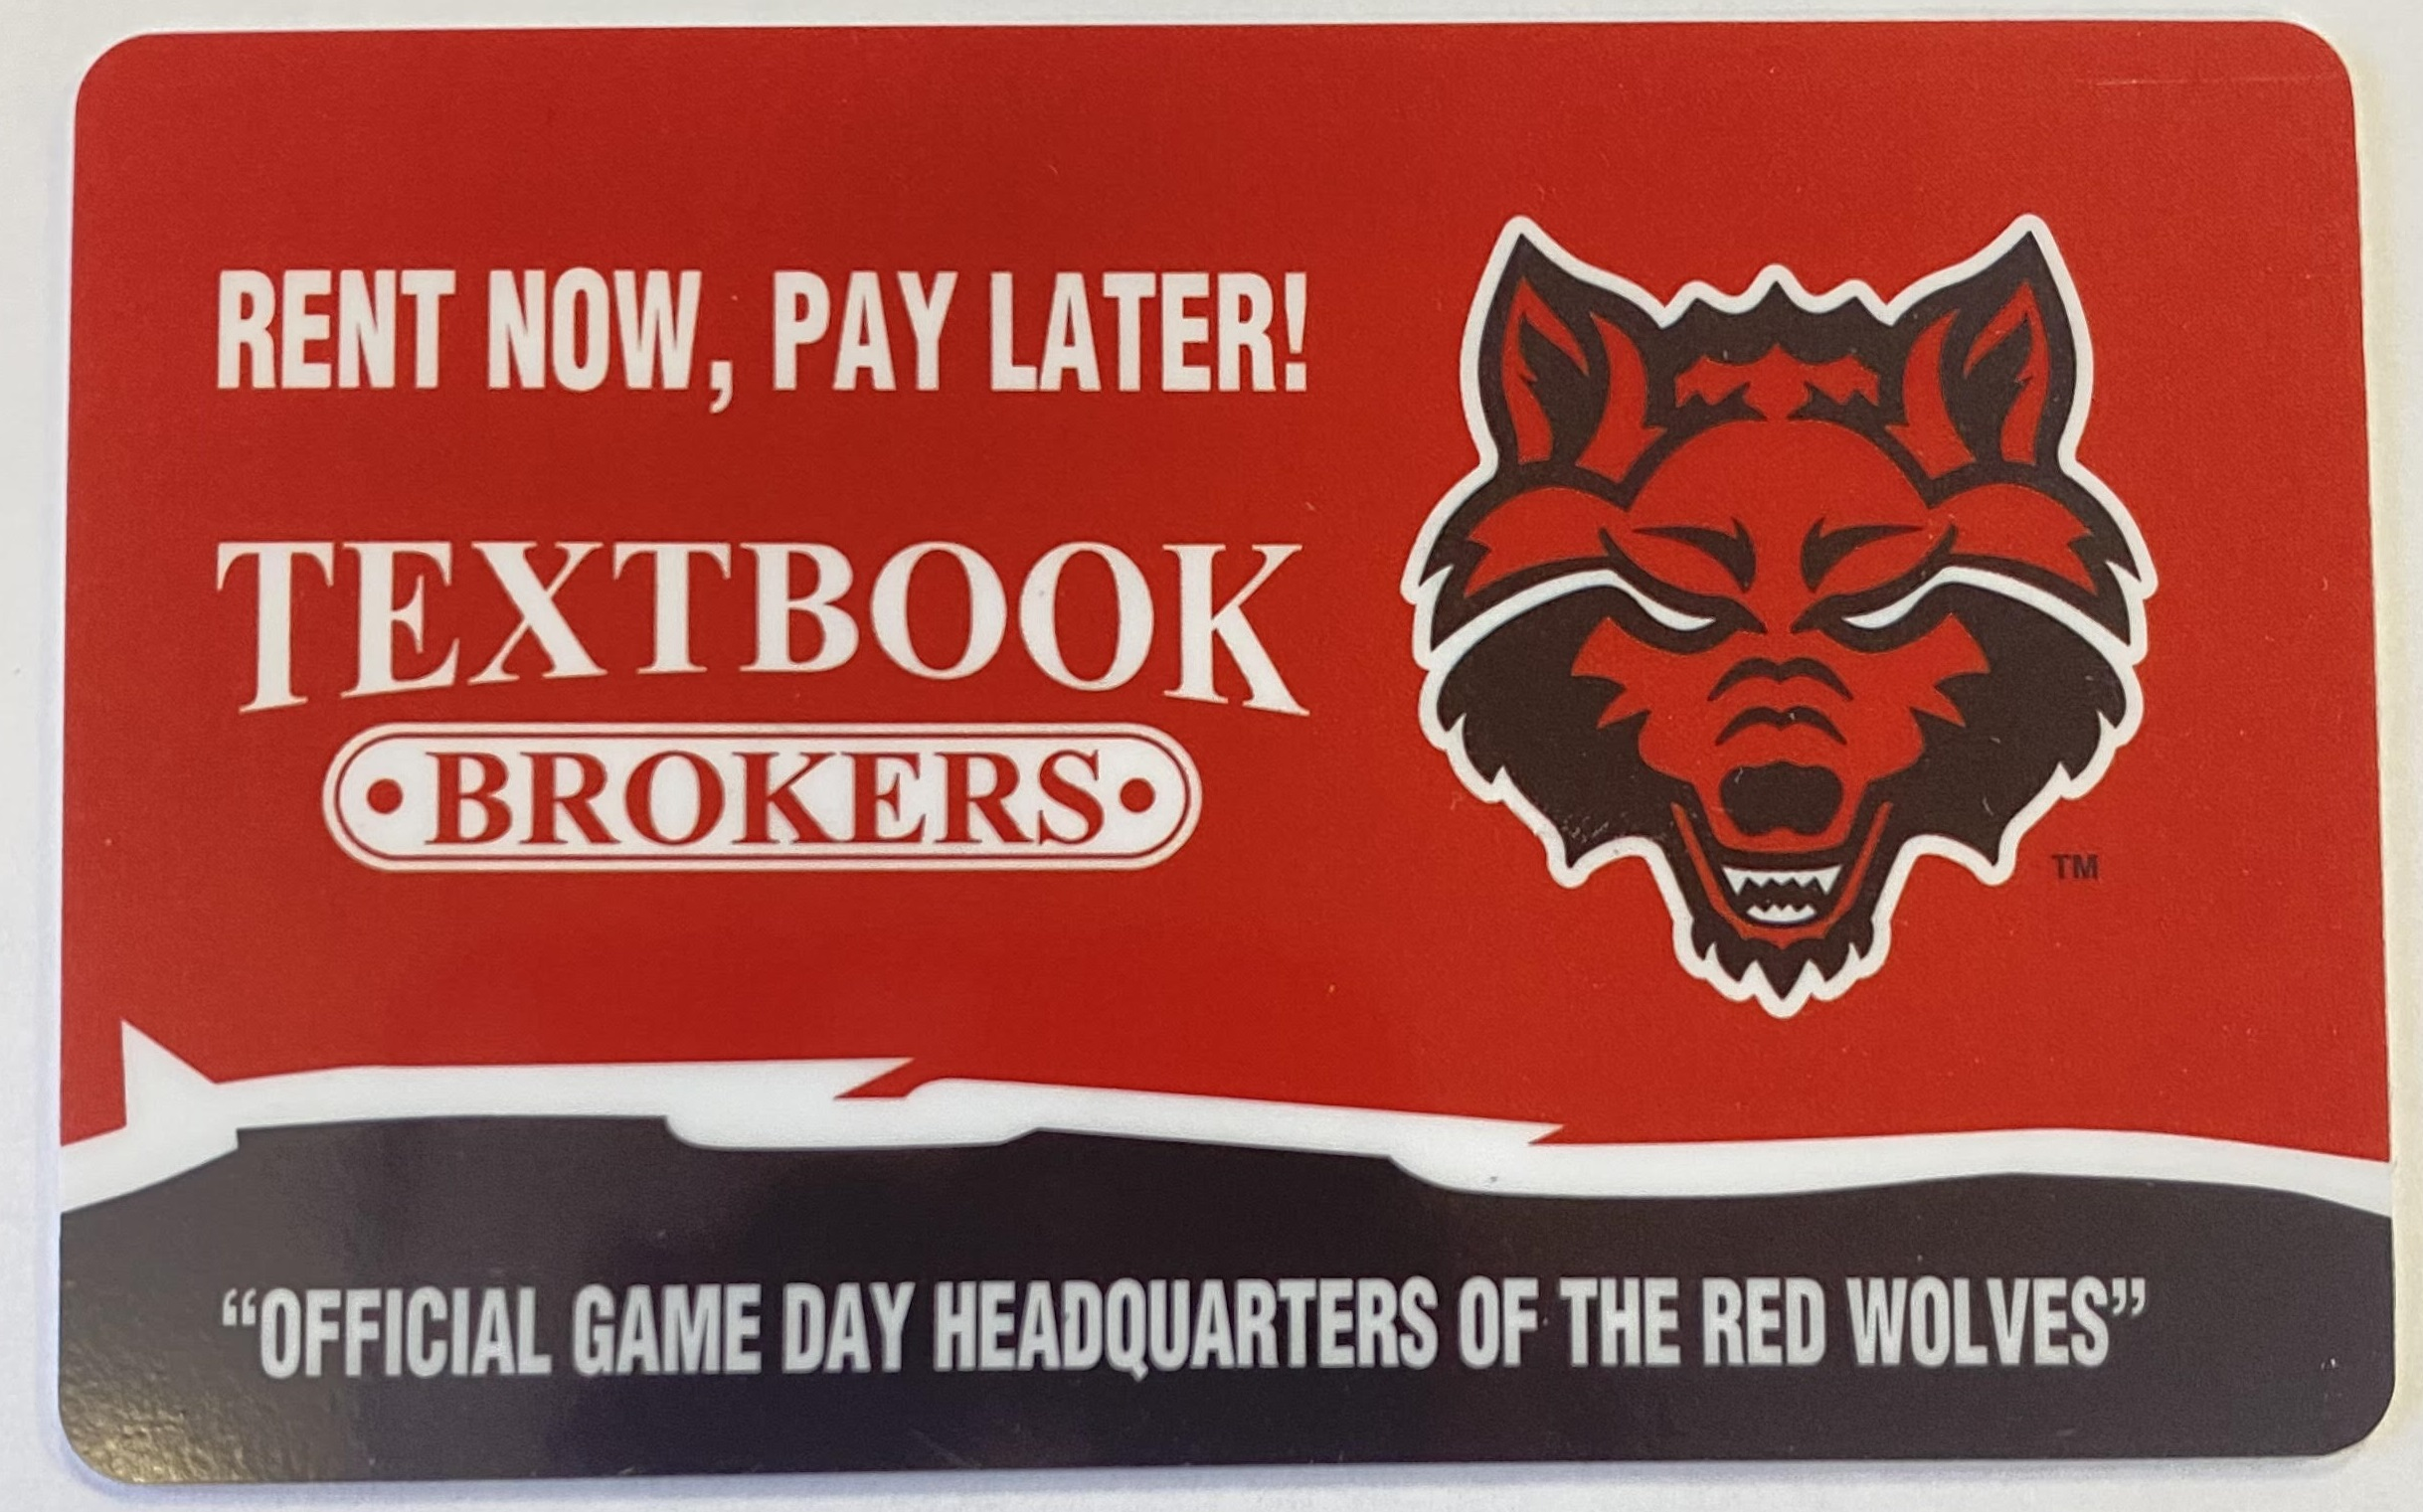 $25 Textbook Brokers Gift Card